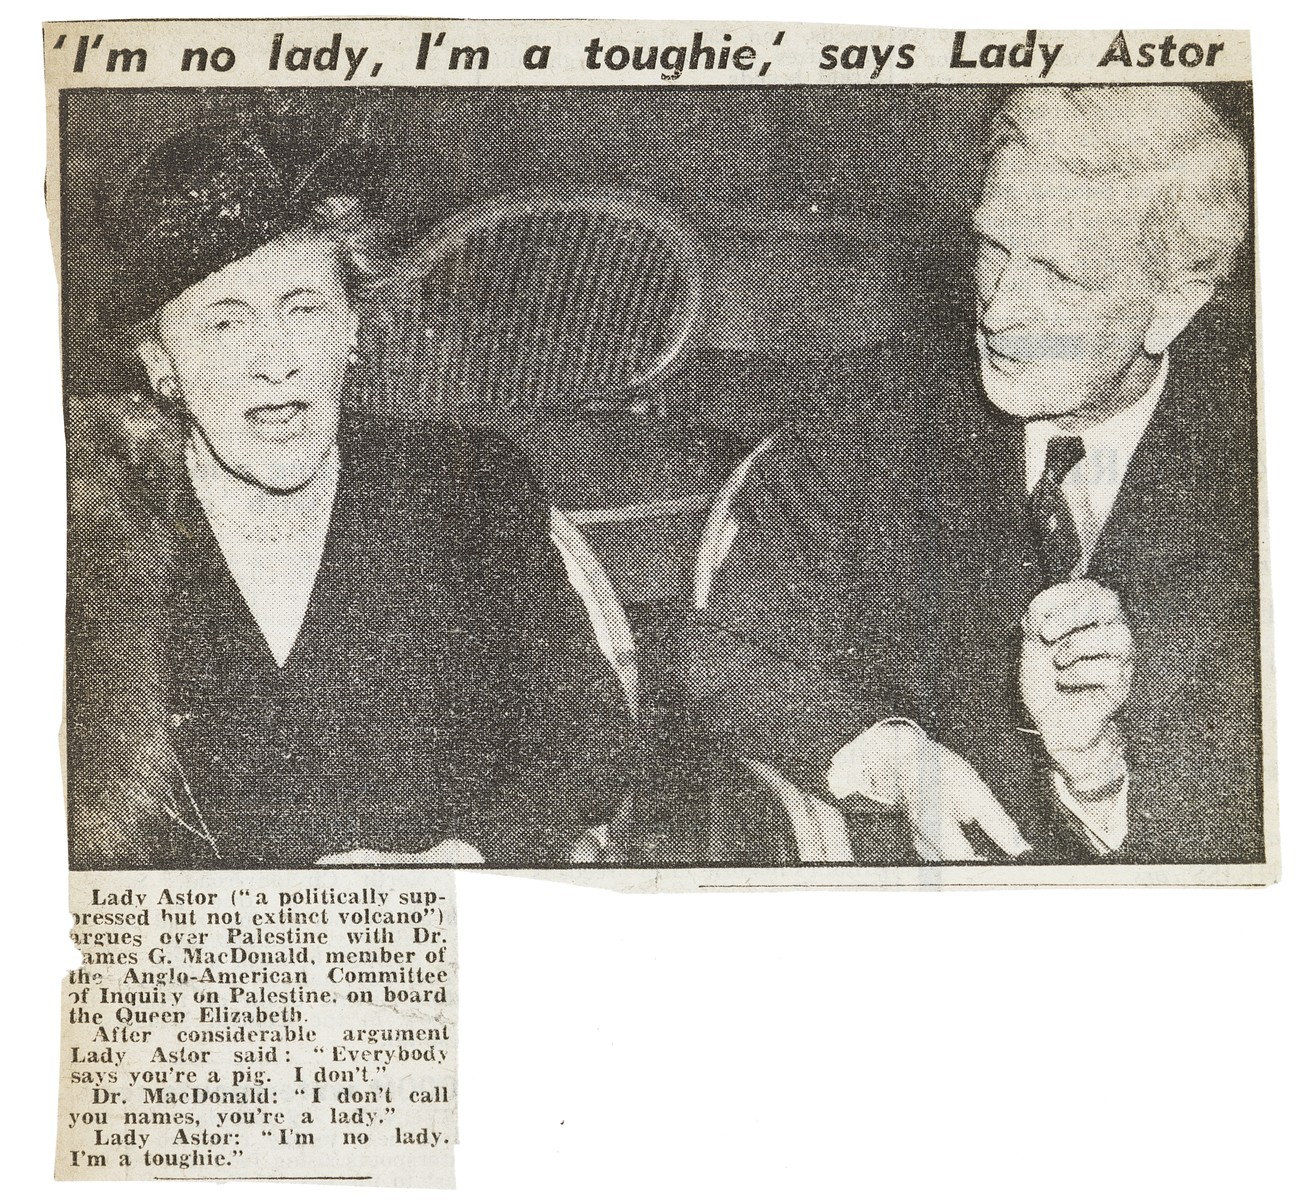 Newspaper article featuring a photograph of James G. McDonald in conversation with Lady Nancy Astor on board the SS Queen Elizabeth.  Lady Astor expresses her views on Palestine with McDonald, who is serving on the Anglo-American Committee of Inquiry on Palestine.